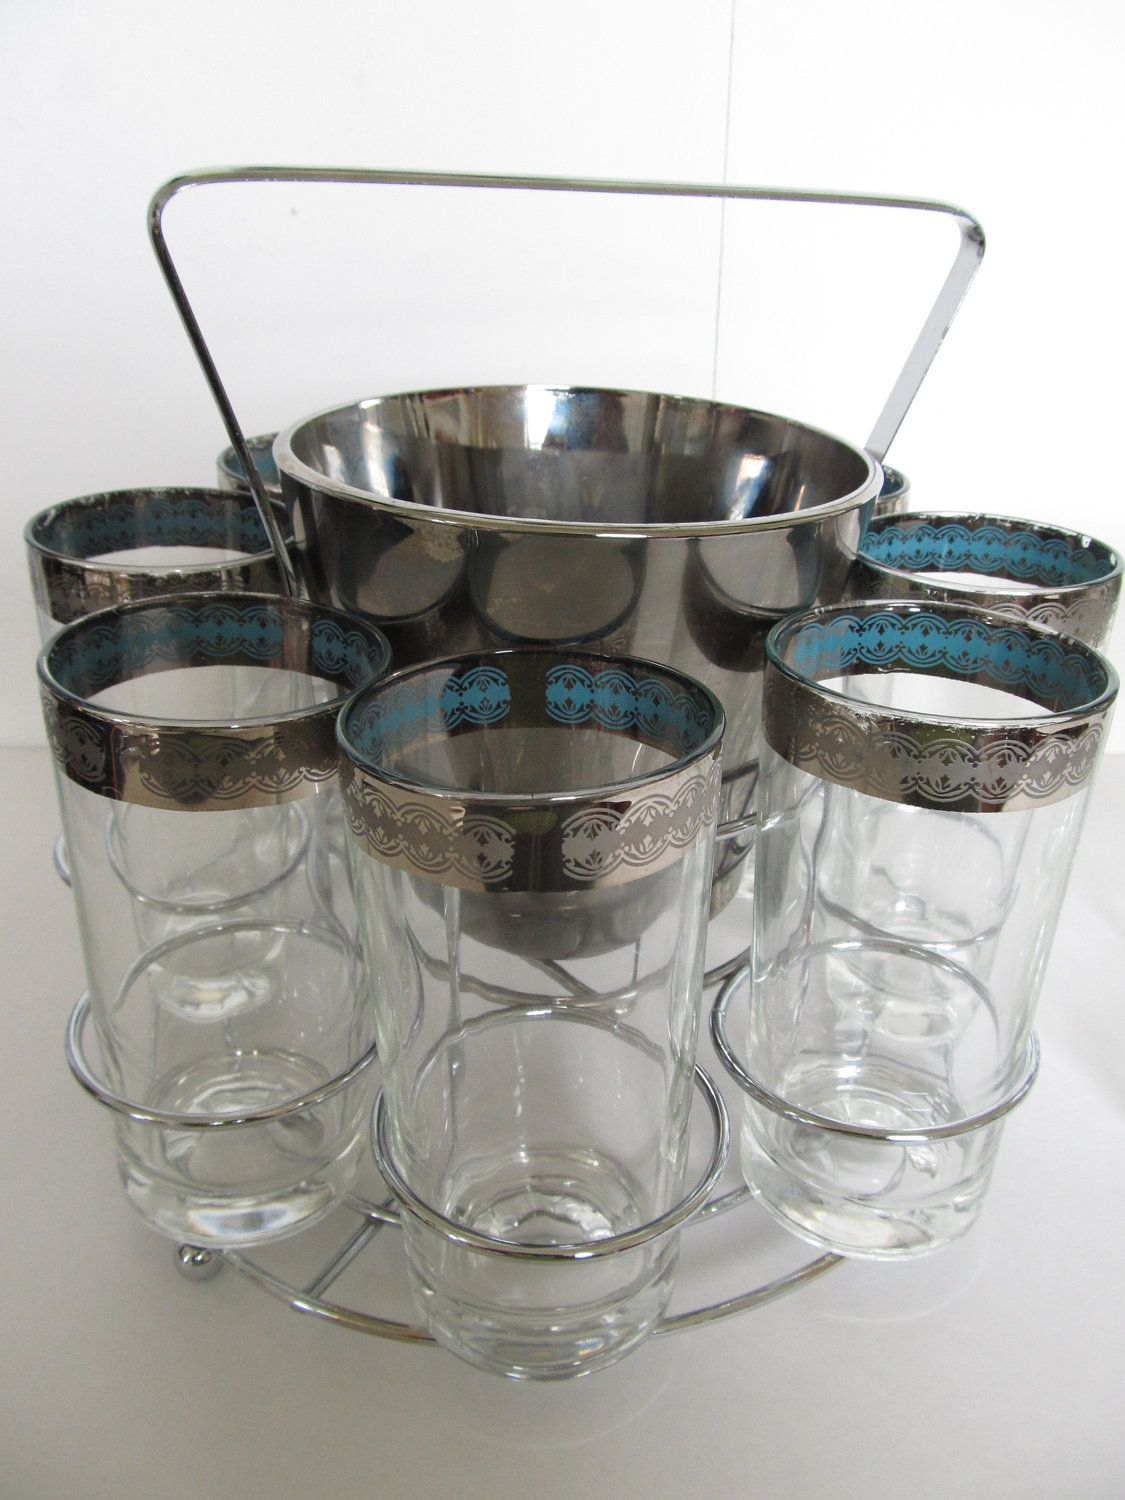 Charming Vintage Barware Set  12 Highball Glasses, Ice Bucket And Caddy  Mad Men  Barware  1950  Comes With FREE Cocktail Book